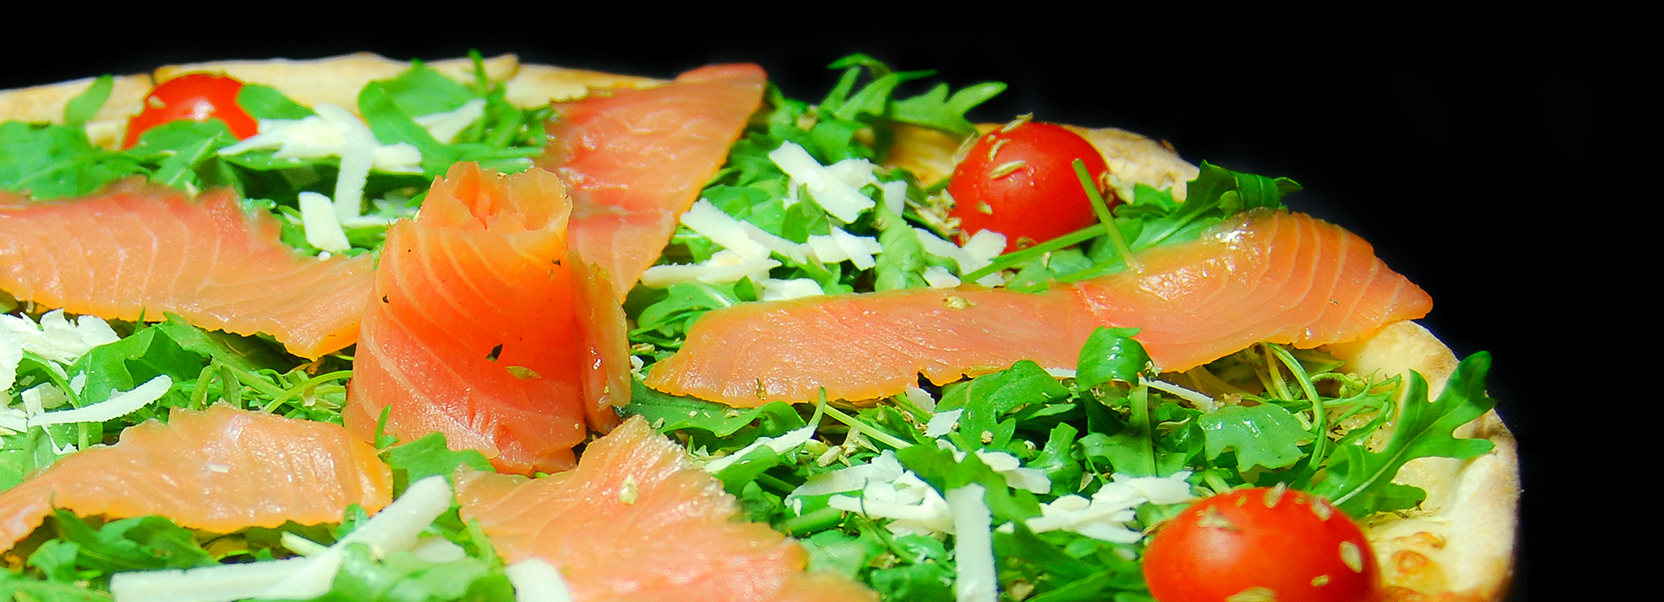 banner homepage pizzarium